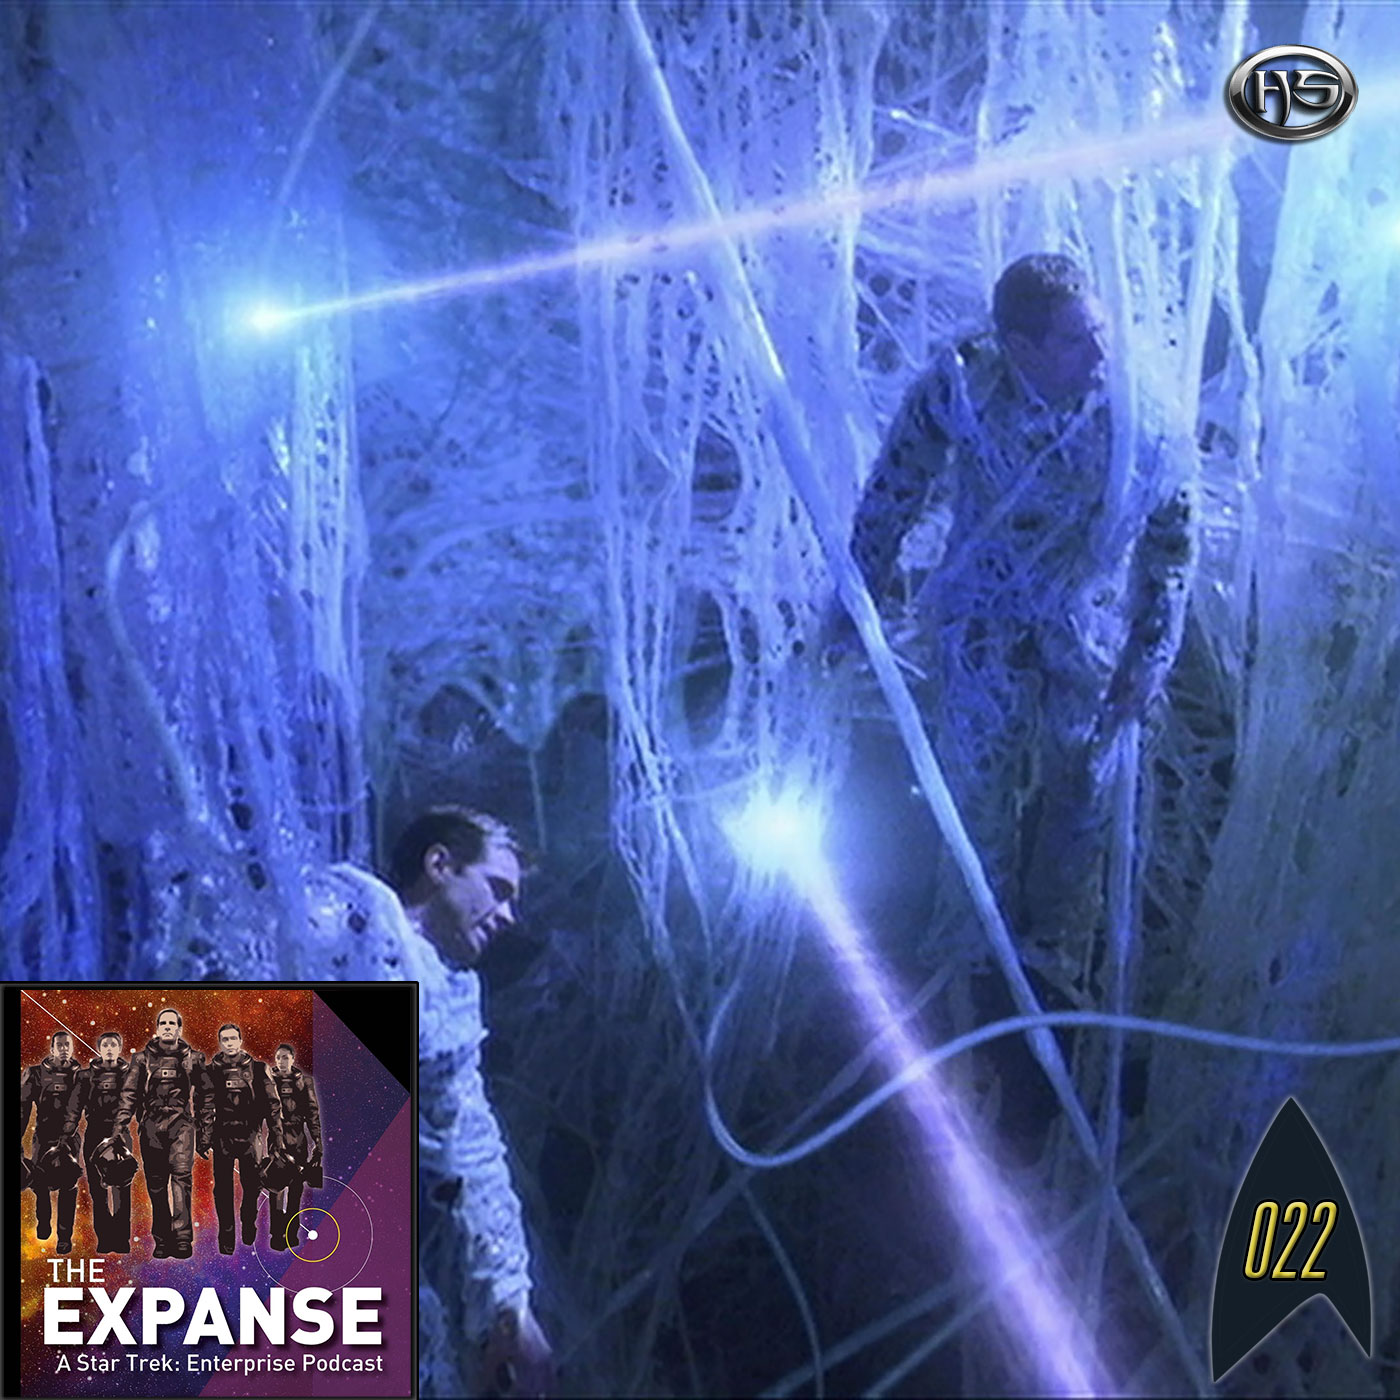 The Expanse Episode 22